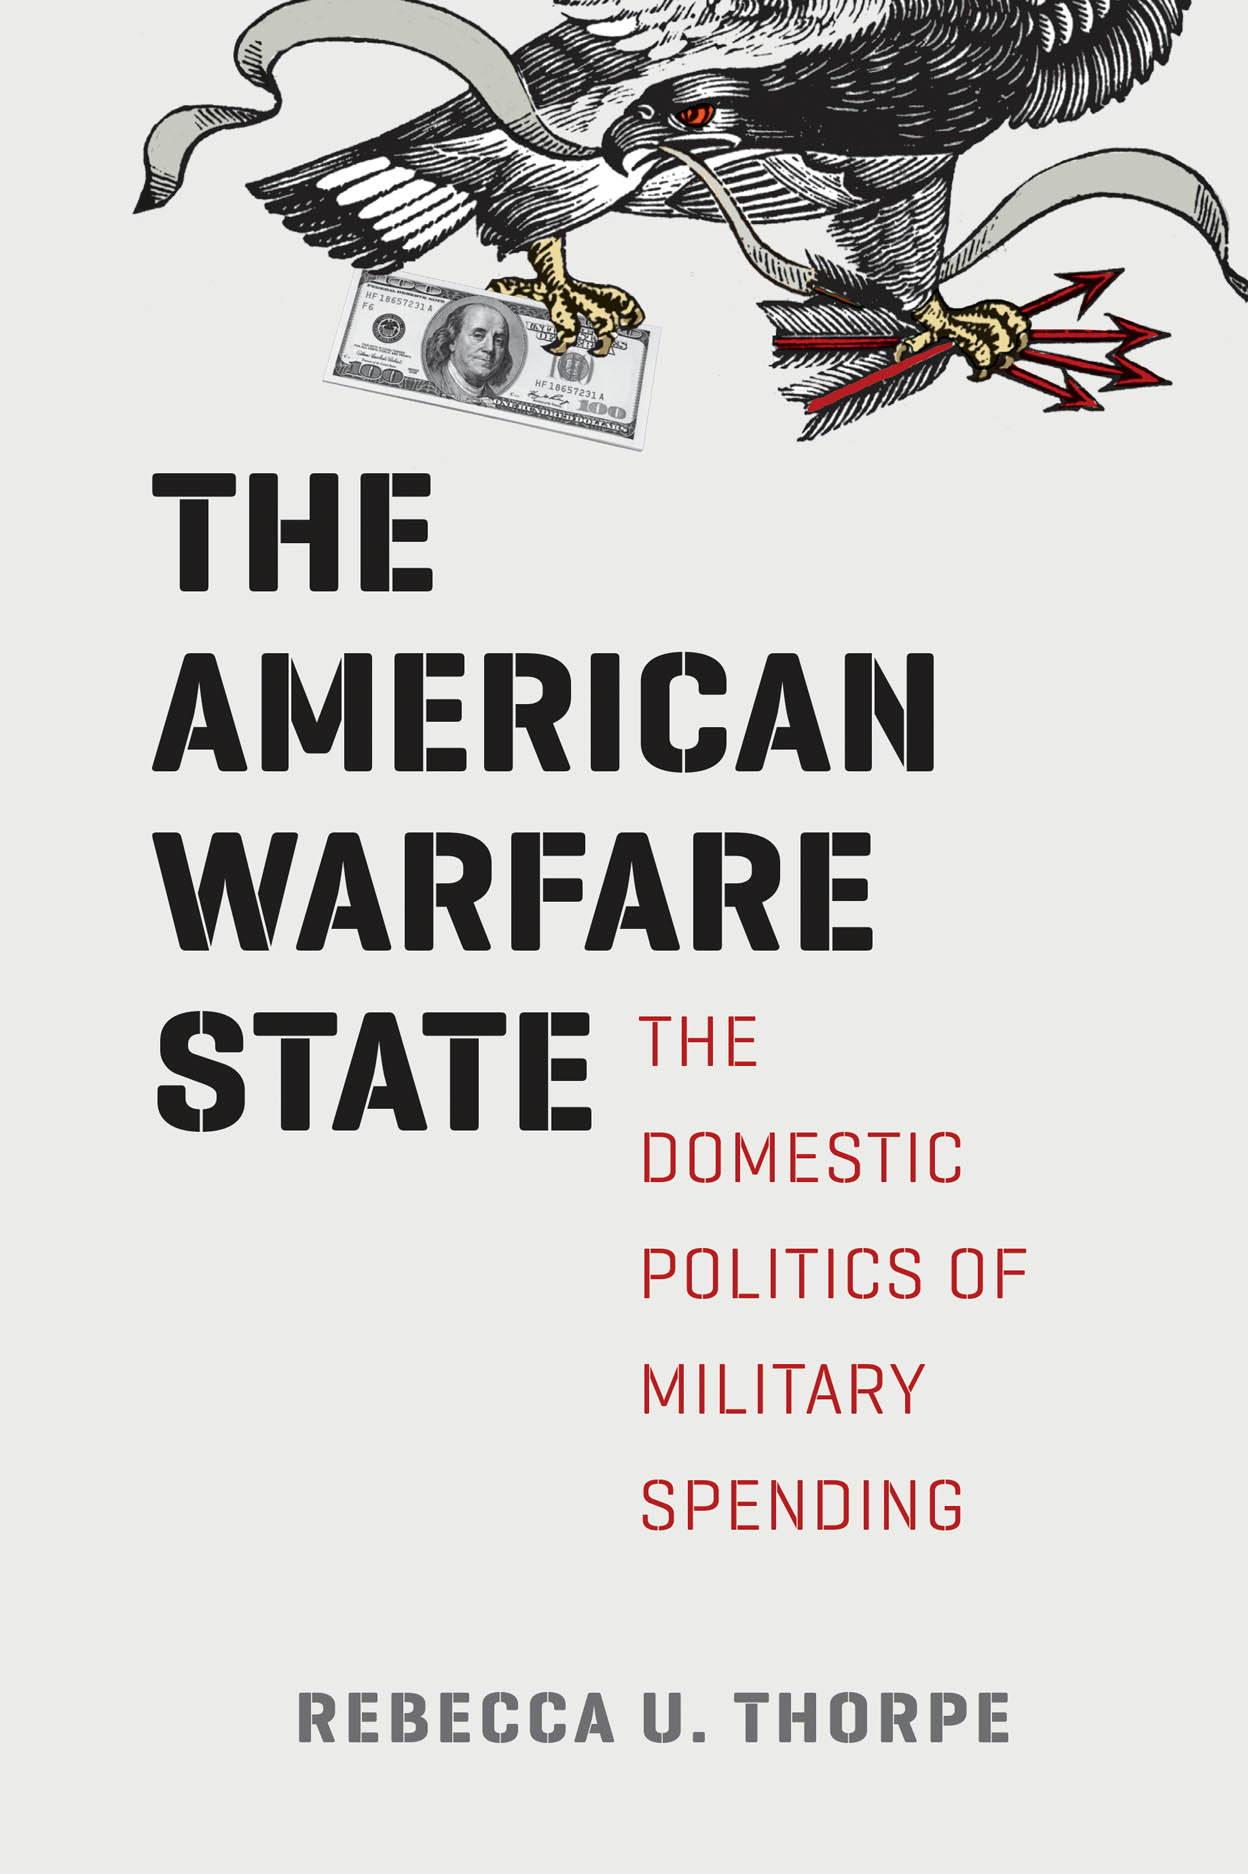 The American Warfare State